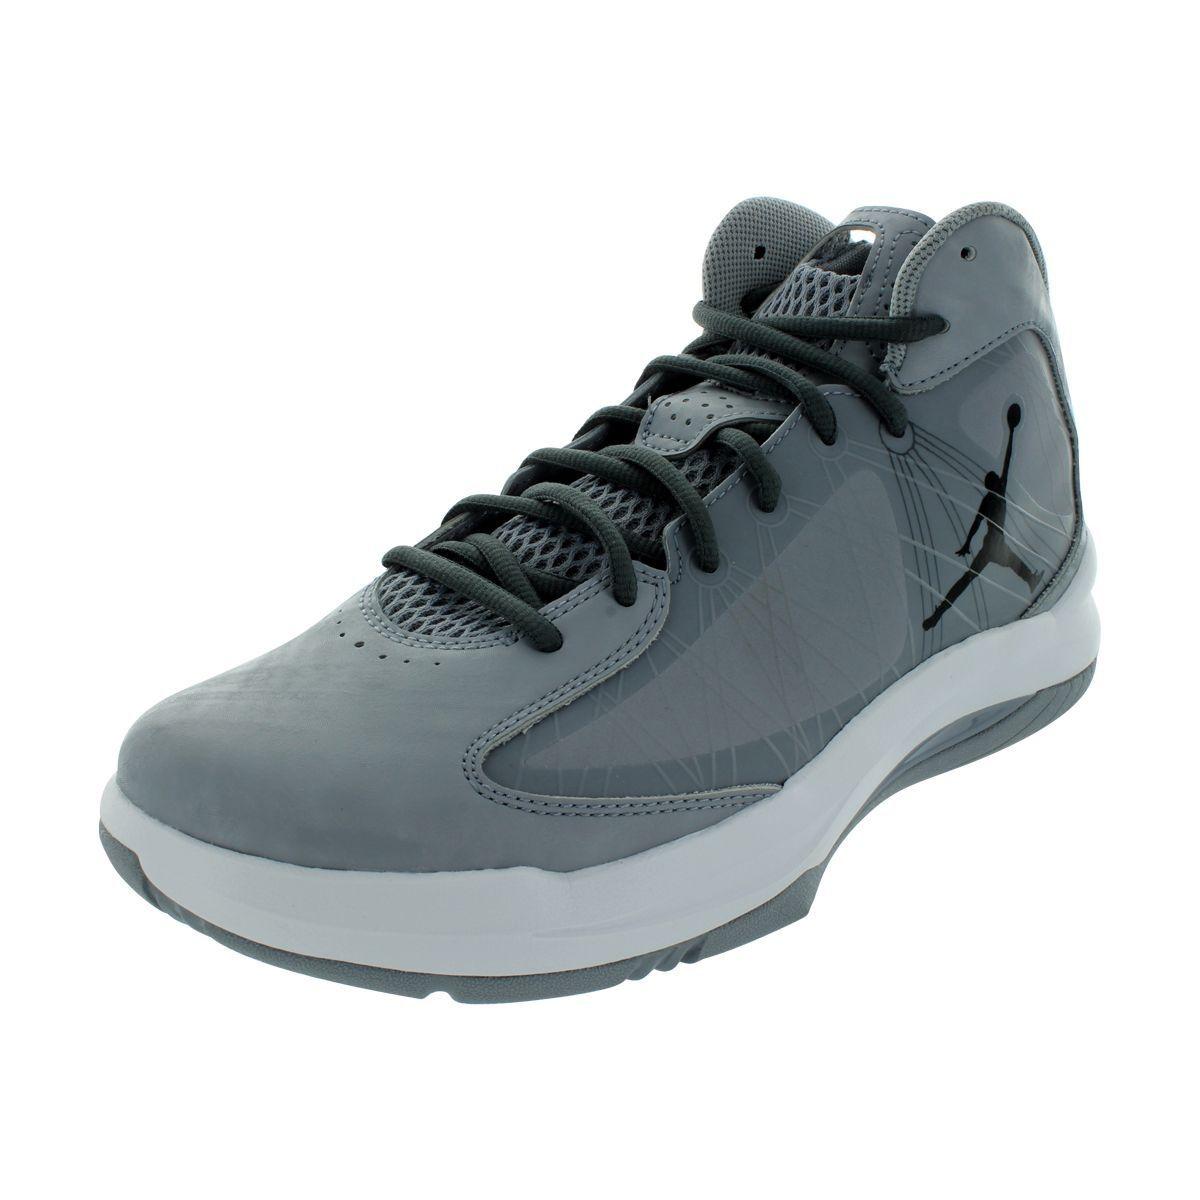 Nike Jordan Aero Flight Basketball Shoe